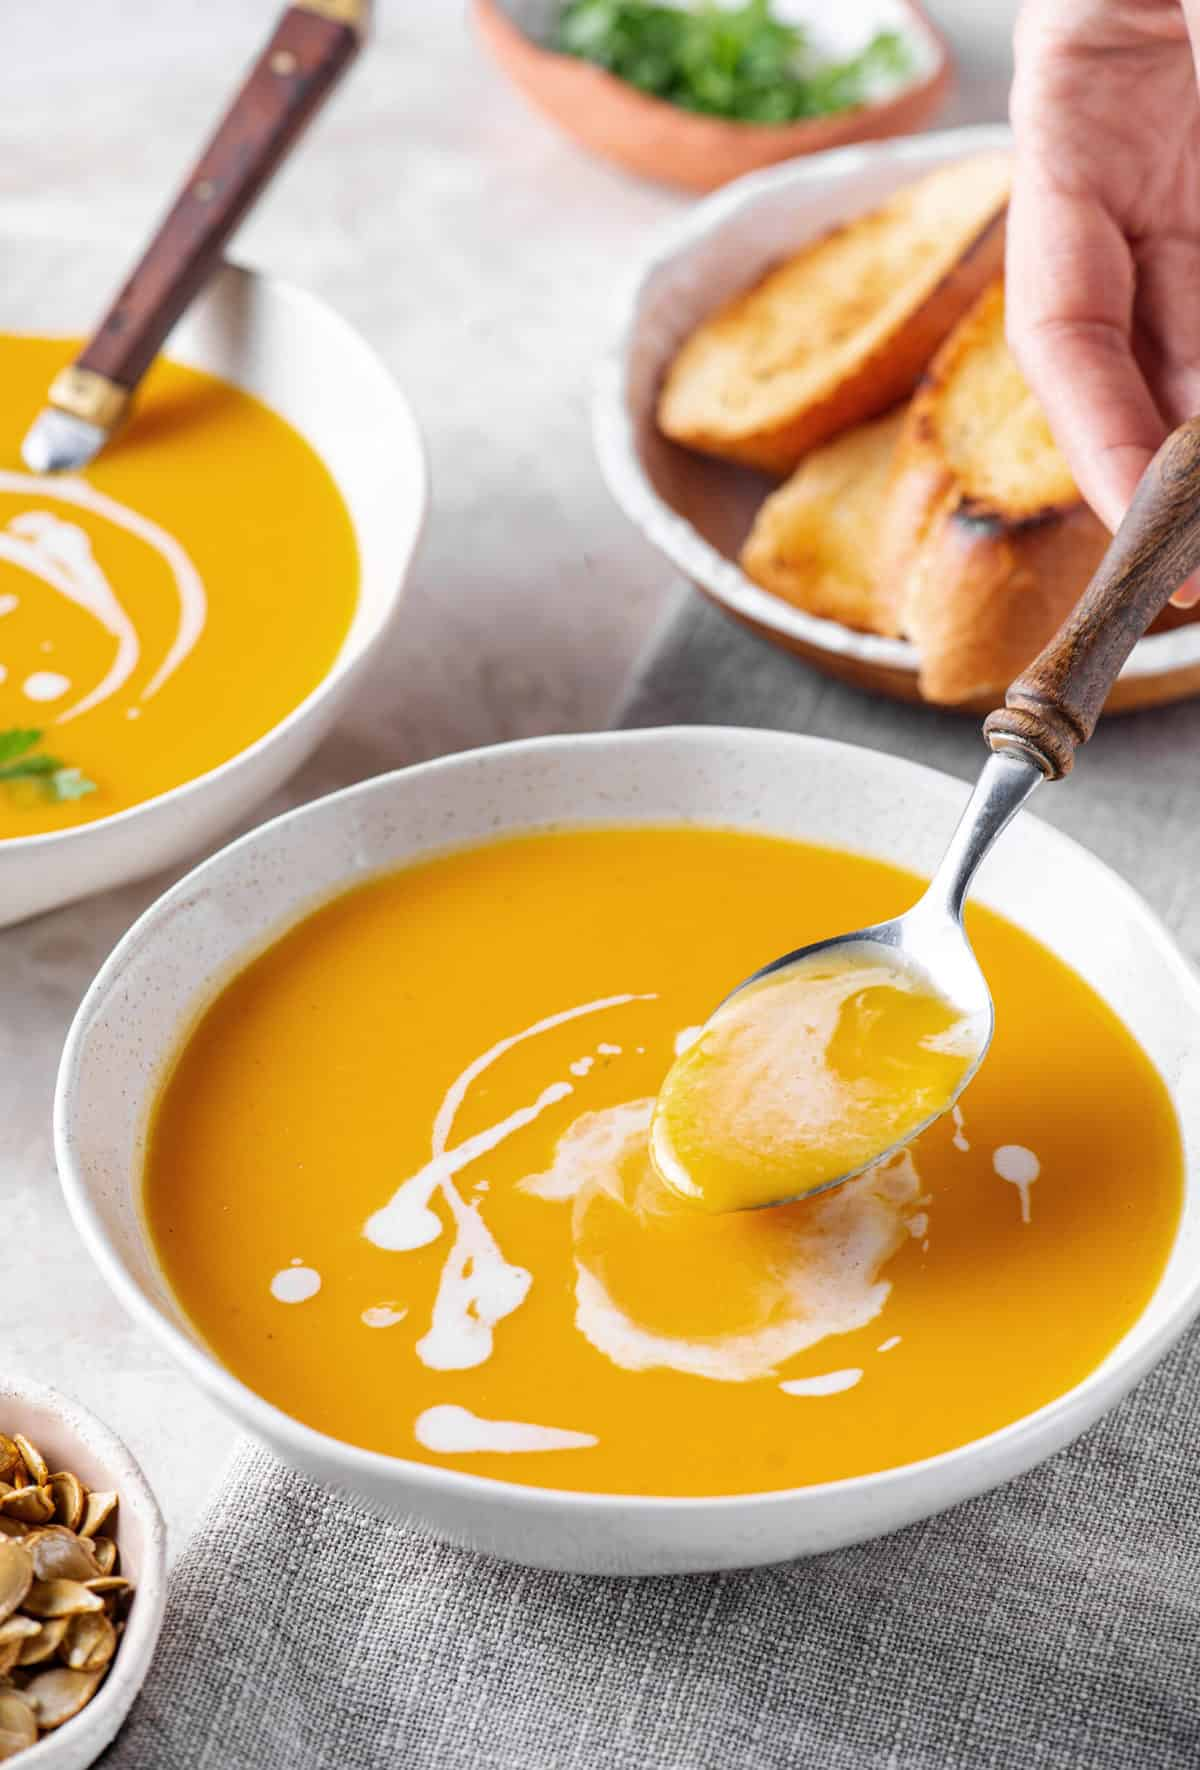 butternut squash soup with spoon served in a white bowl